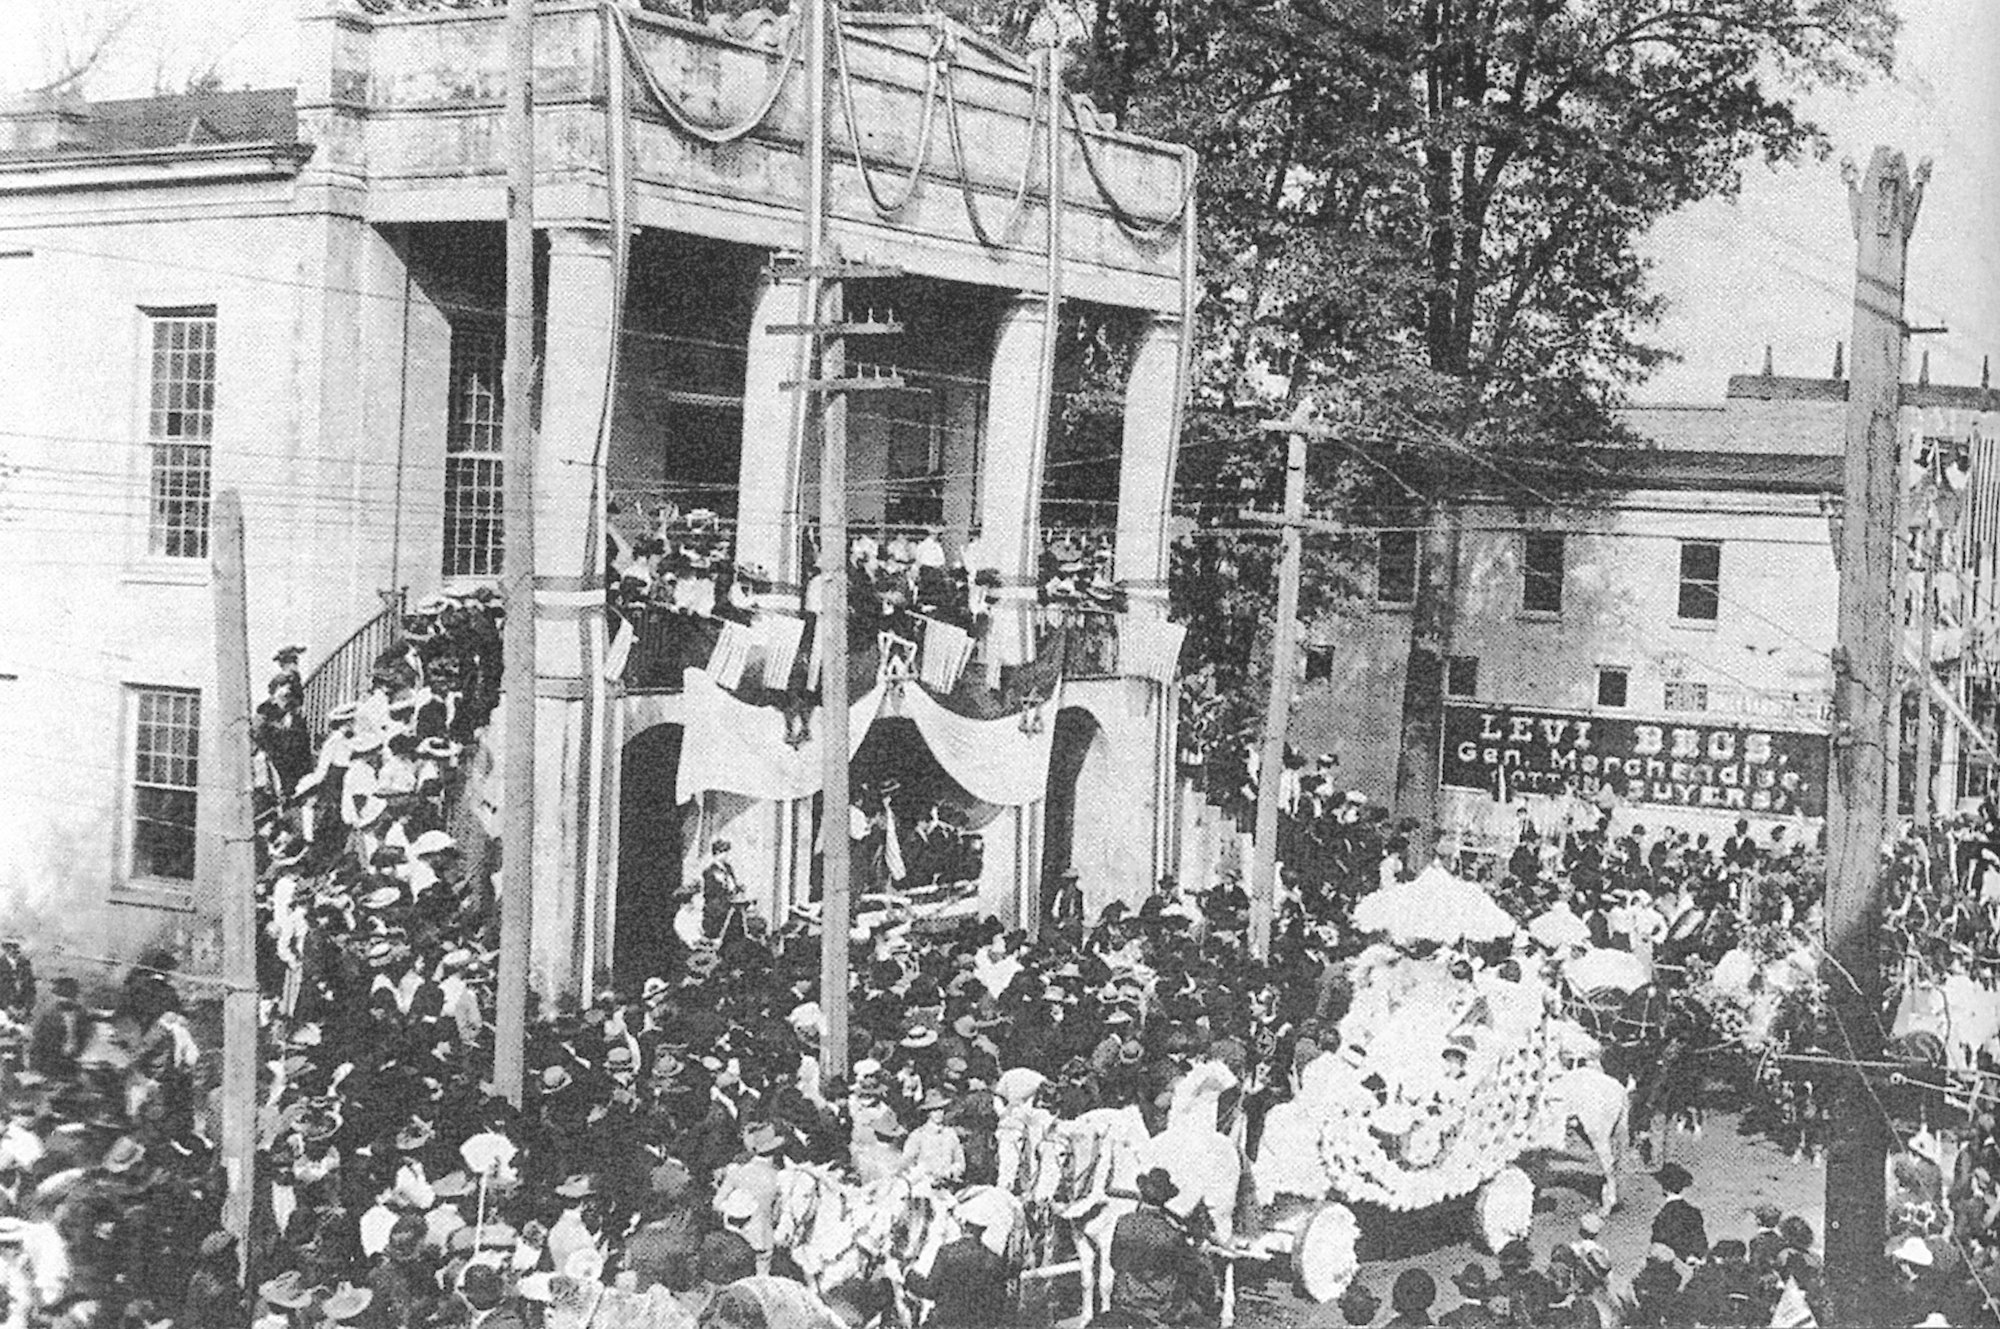 Sumter's second courthouse is seen during a parade on Main Street in 1893. This courthouse was completed in 1821 and faced Main Street across from the Sumter Opera House.